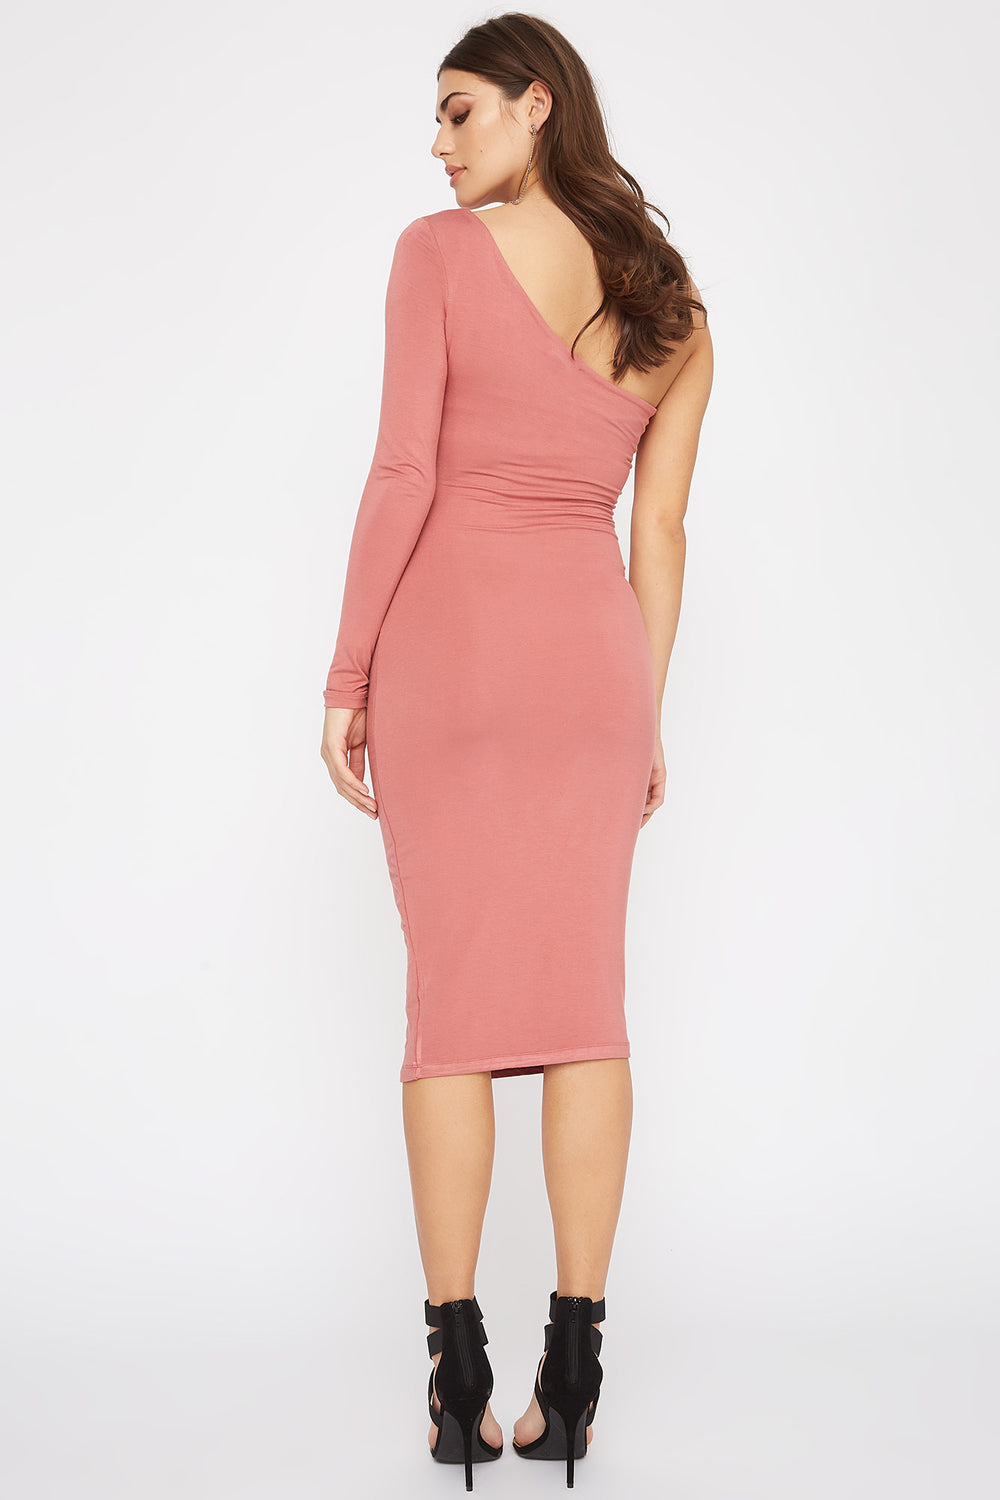 One Shoulder Bodycon Midi Dress Dark Pink